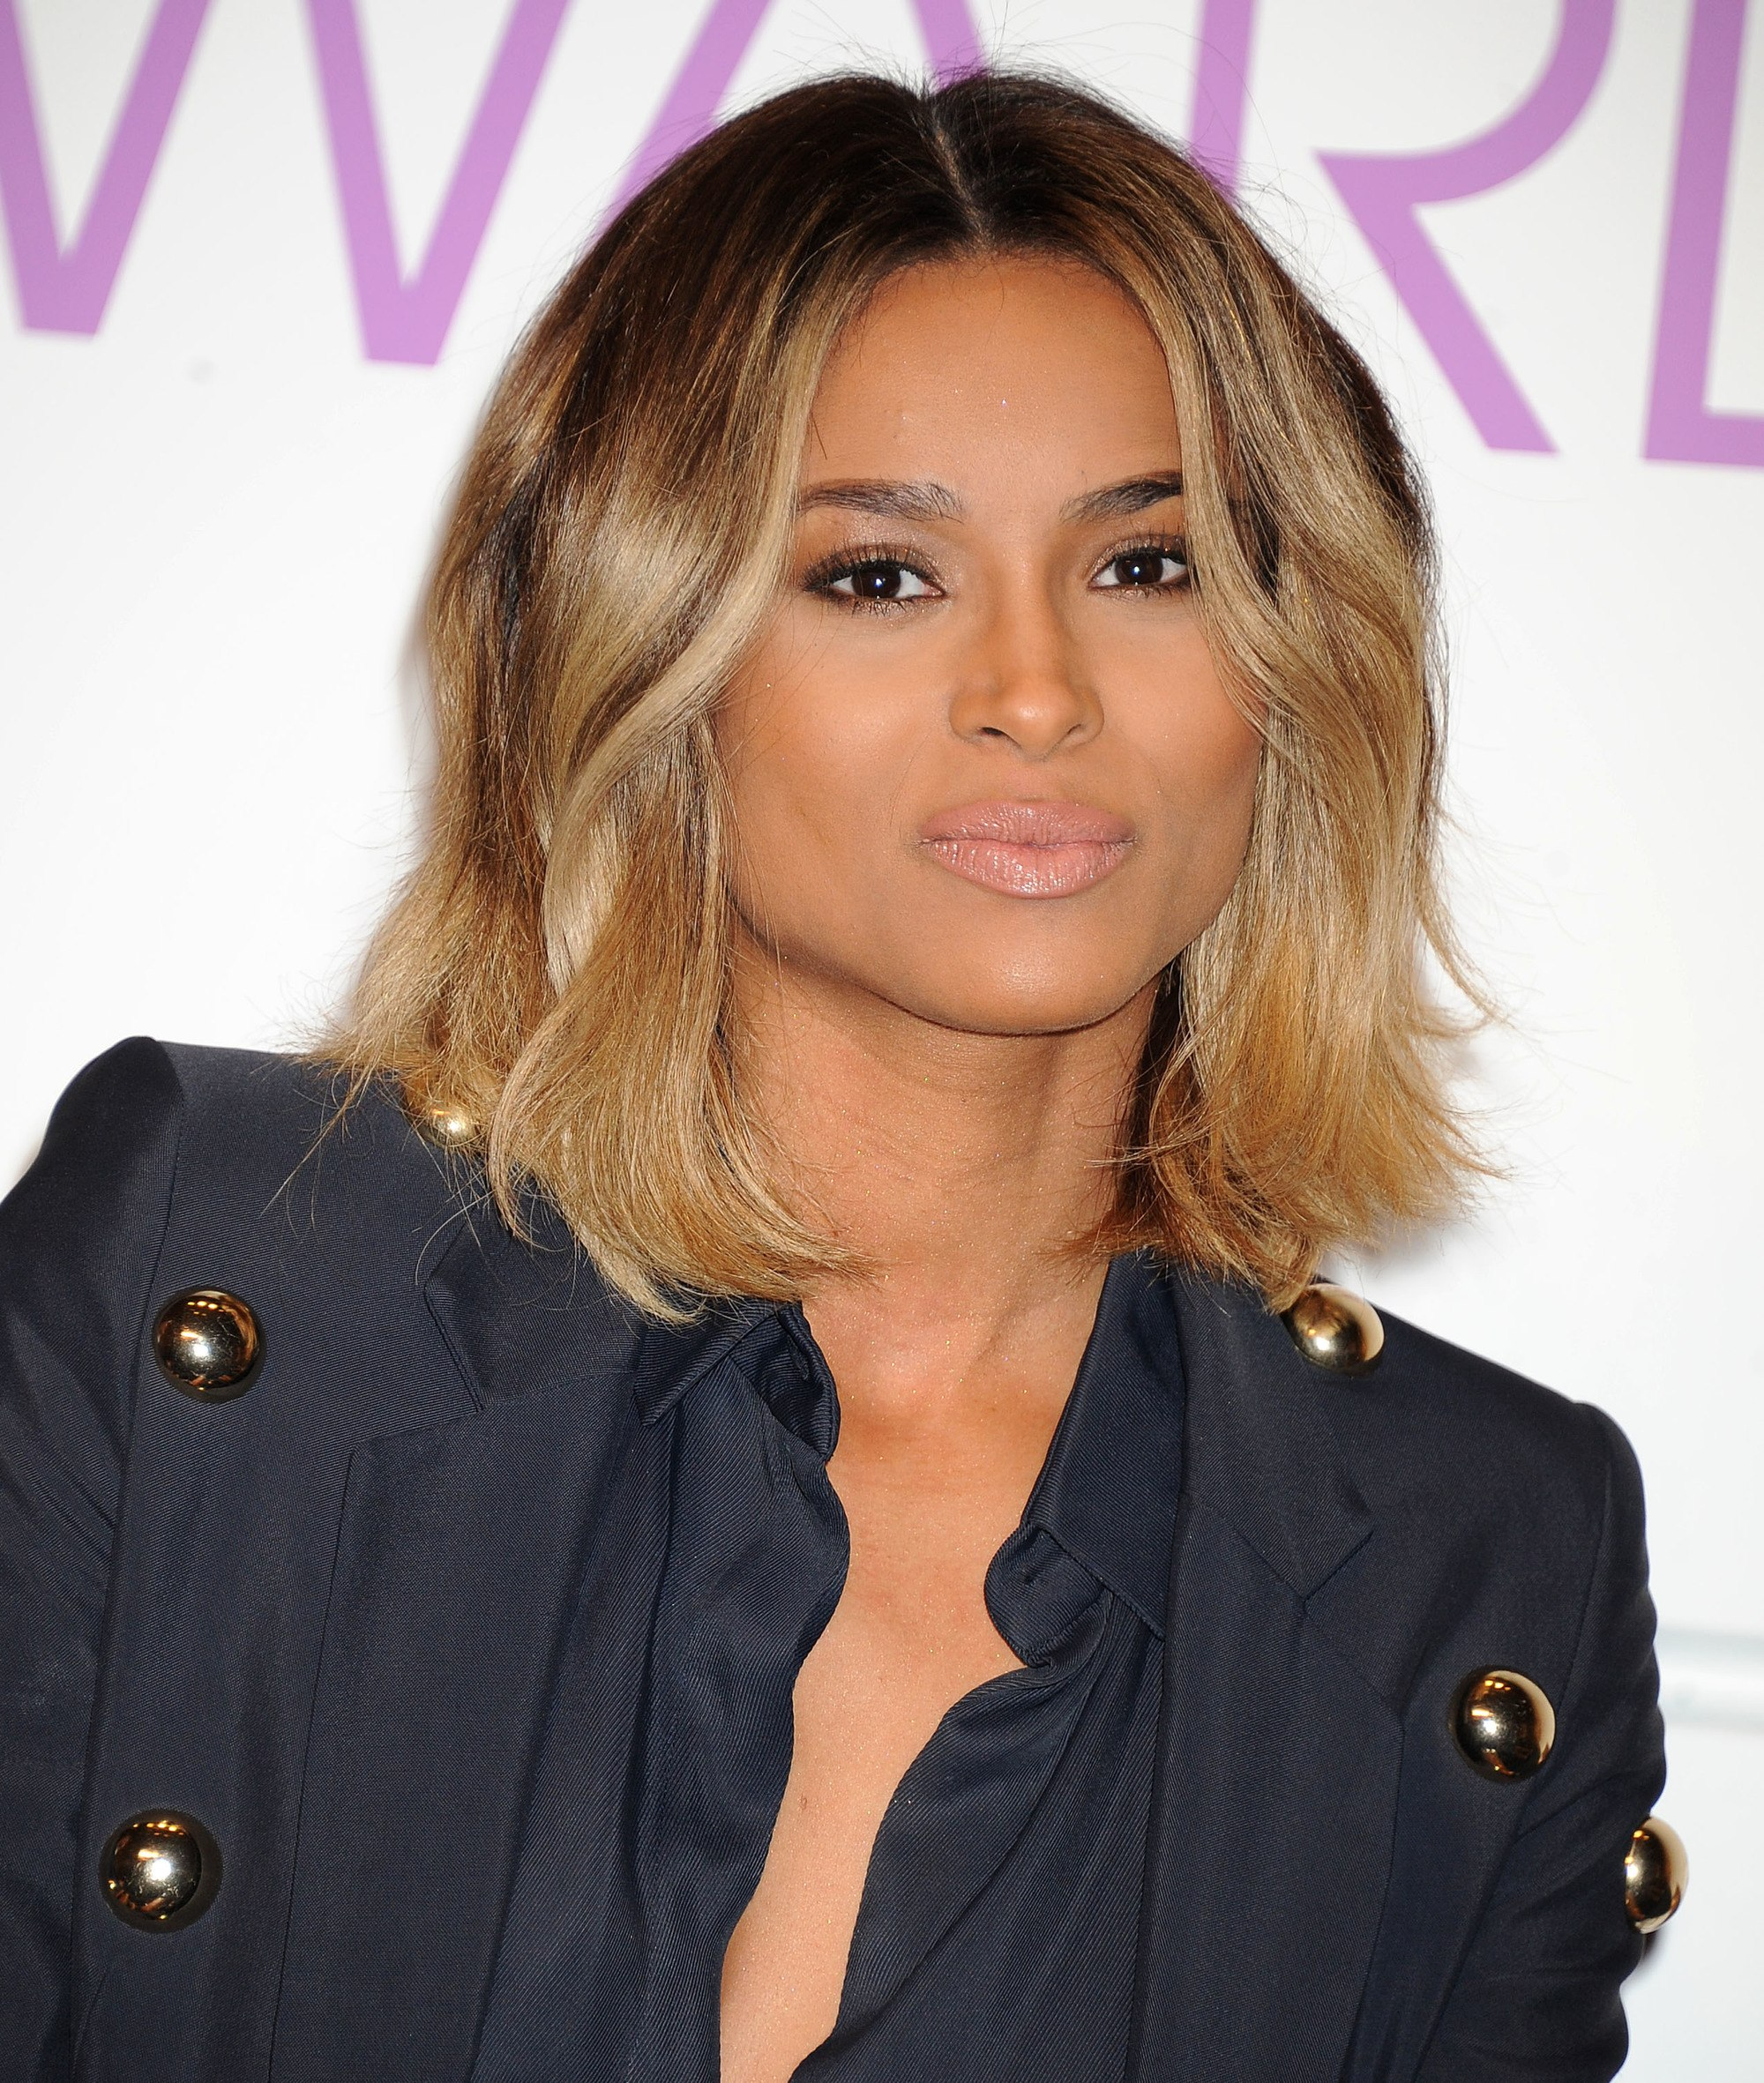 Blonde Ombre Hair 20 Tempting Celebrity Styles To Try All Things